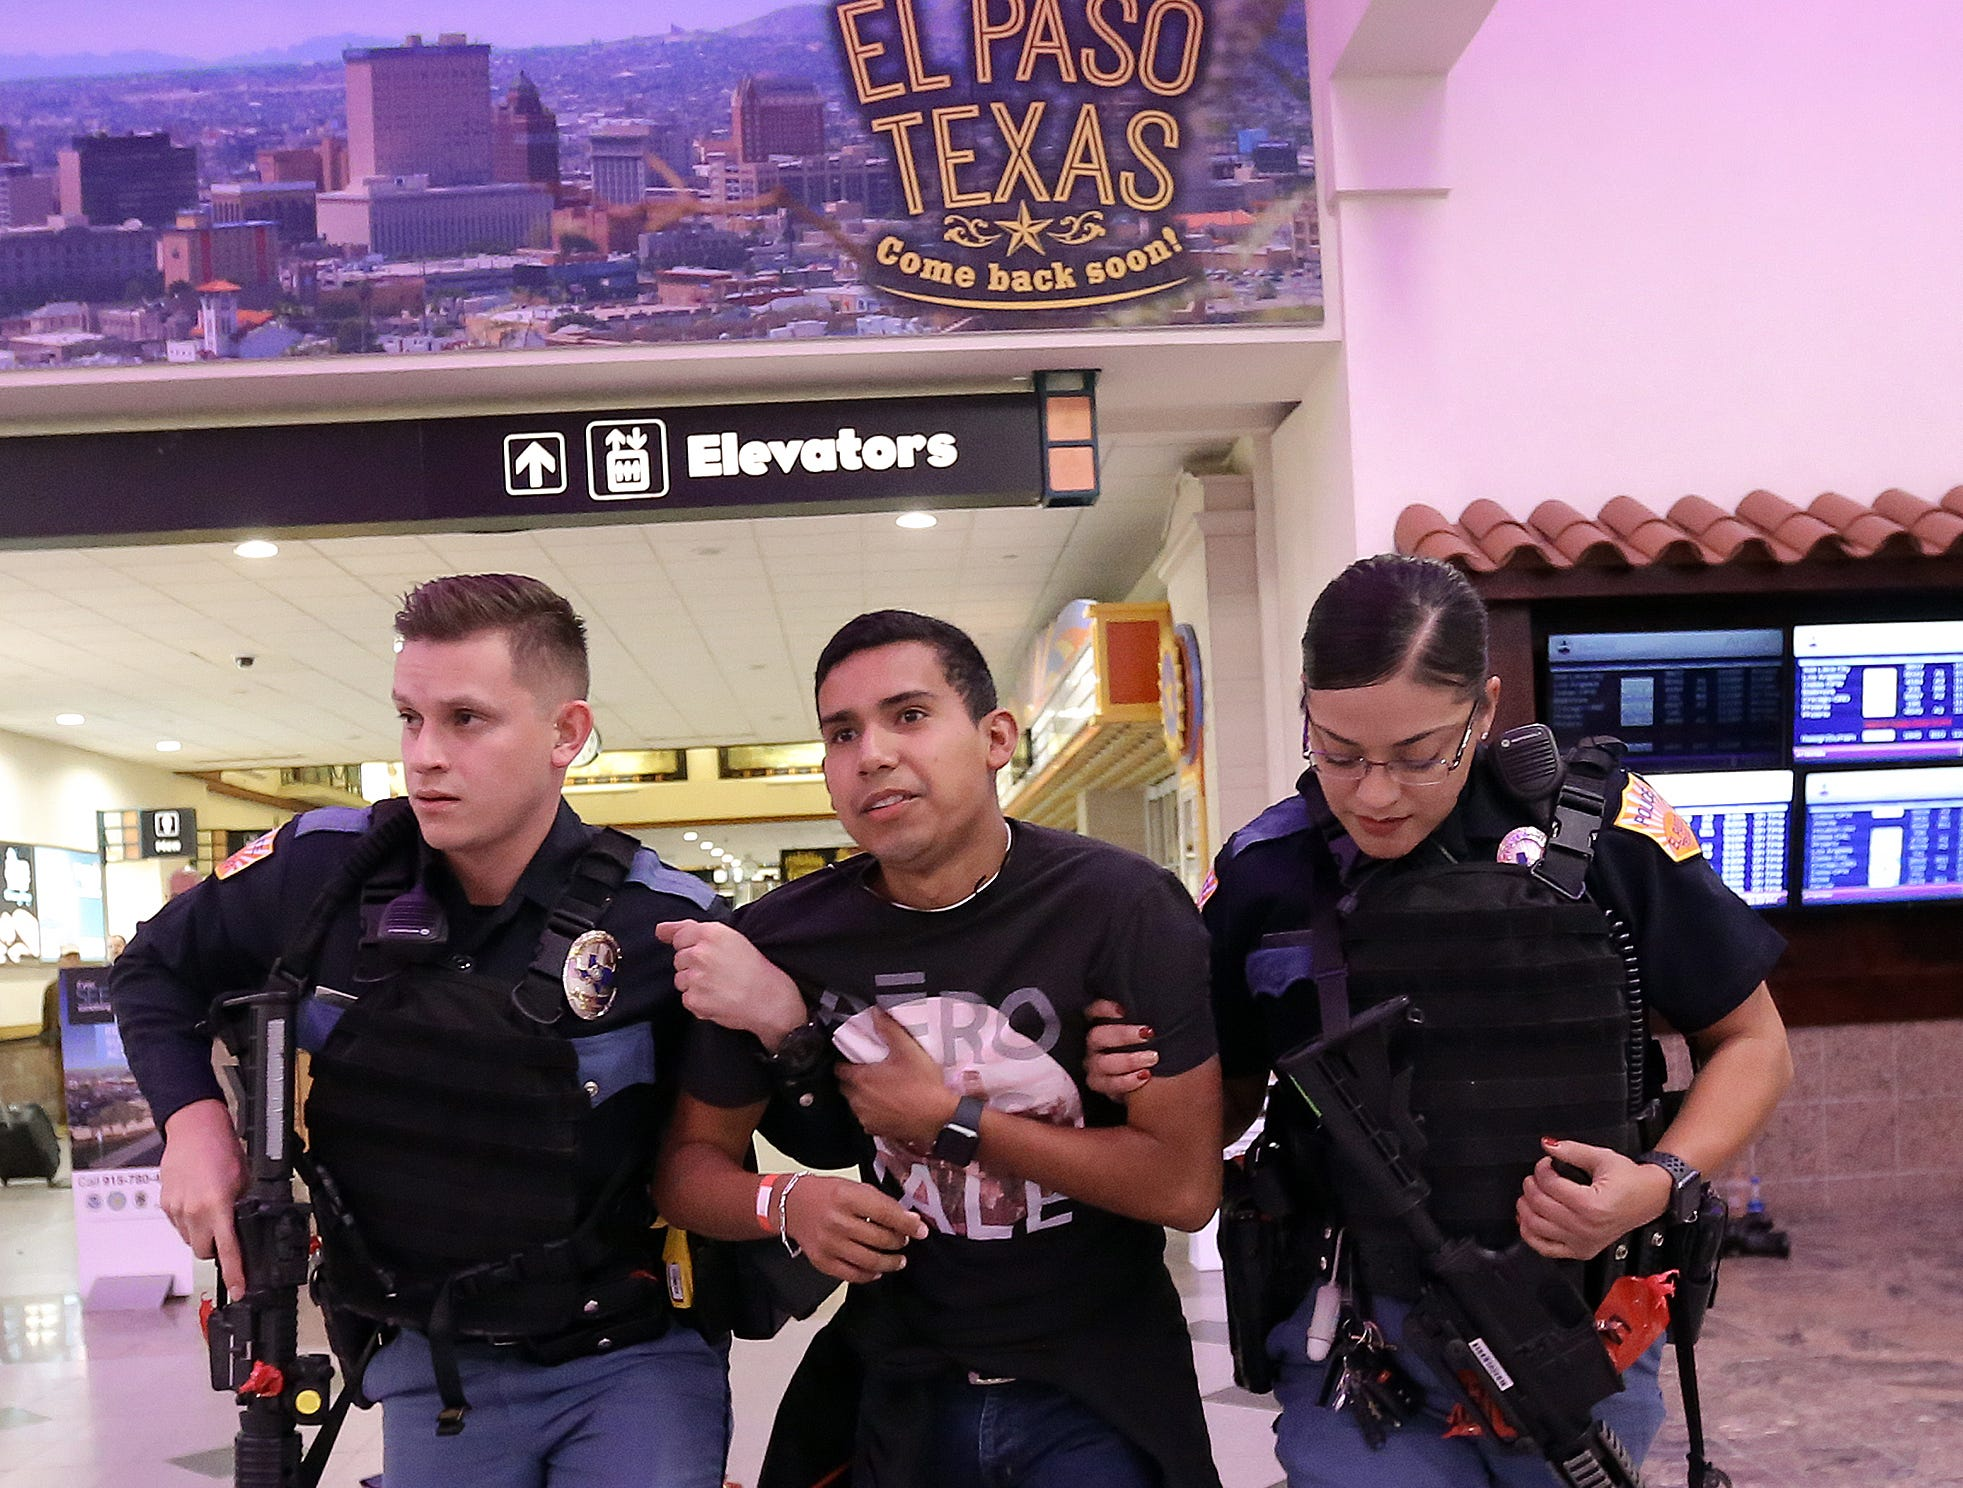 Several law enforcement agencies converged on the El Paso International Airport late Monday night for a live training on a live shooter/terrorist situation. The scenario played out with the assistance of dozens of actors, law enforcement, paramedics and evidence teams.